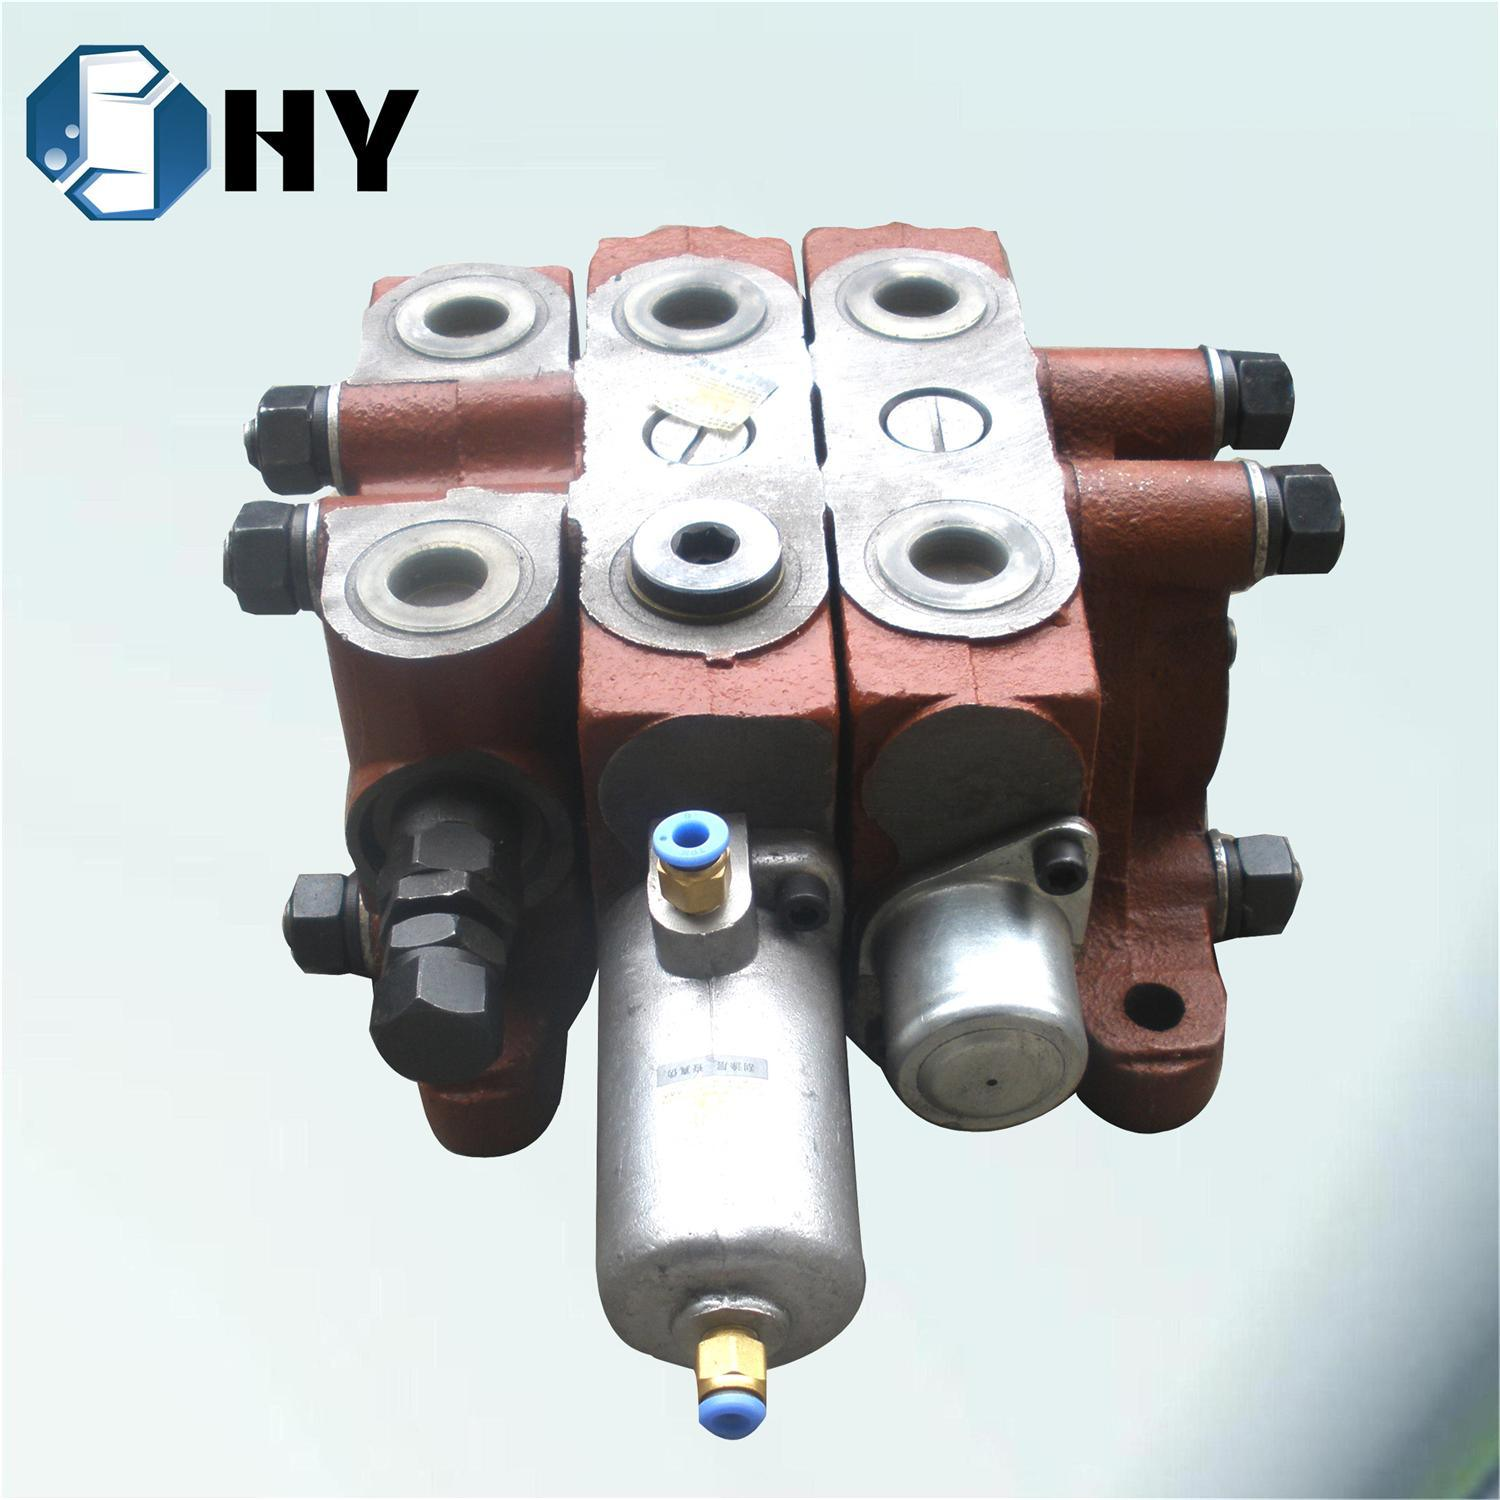 DL20 2 Spools Hydraulic Pneumatic Control Valve for Side Dumper